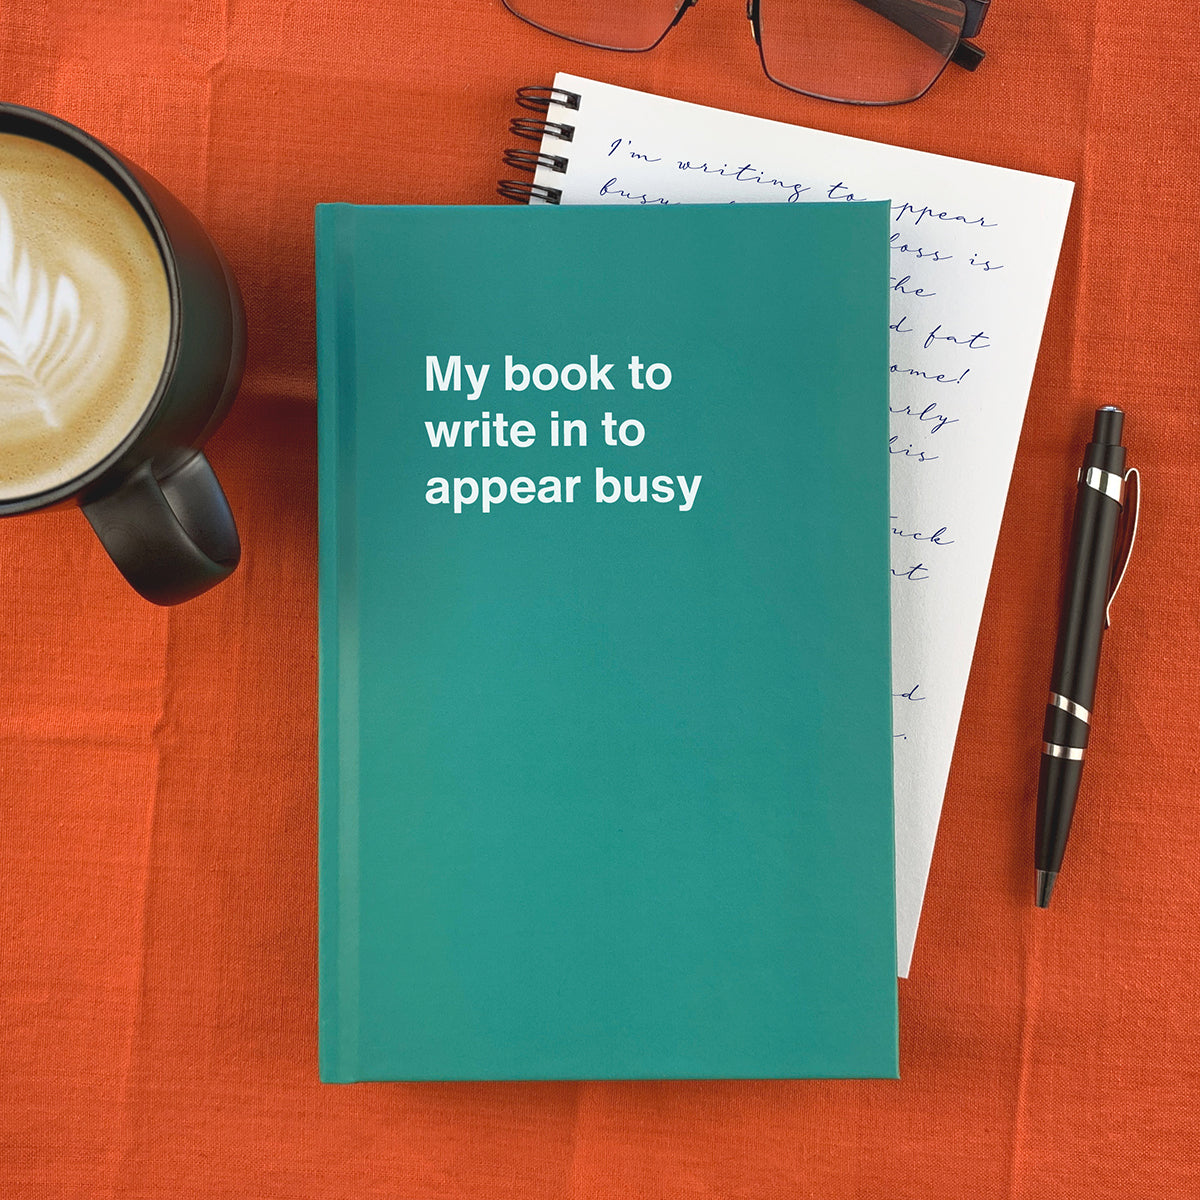 My book to write in to appear busy